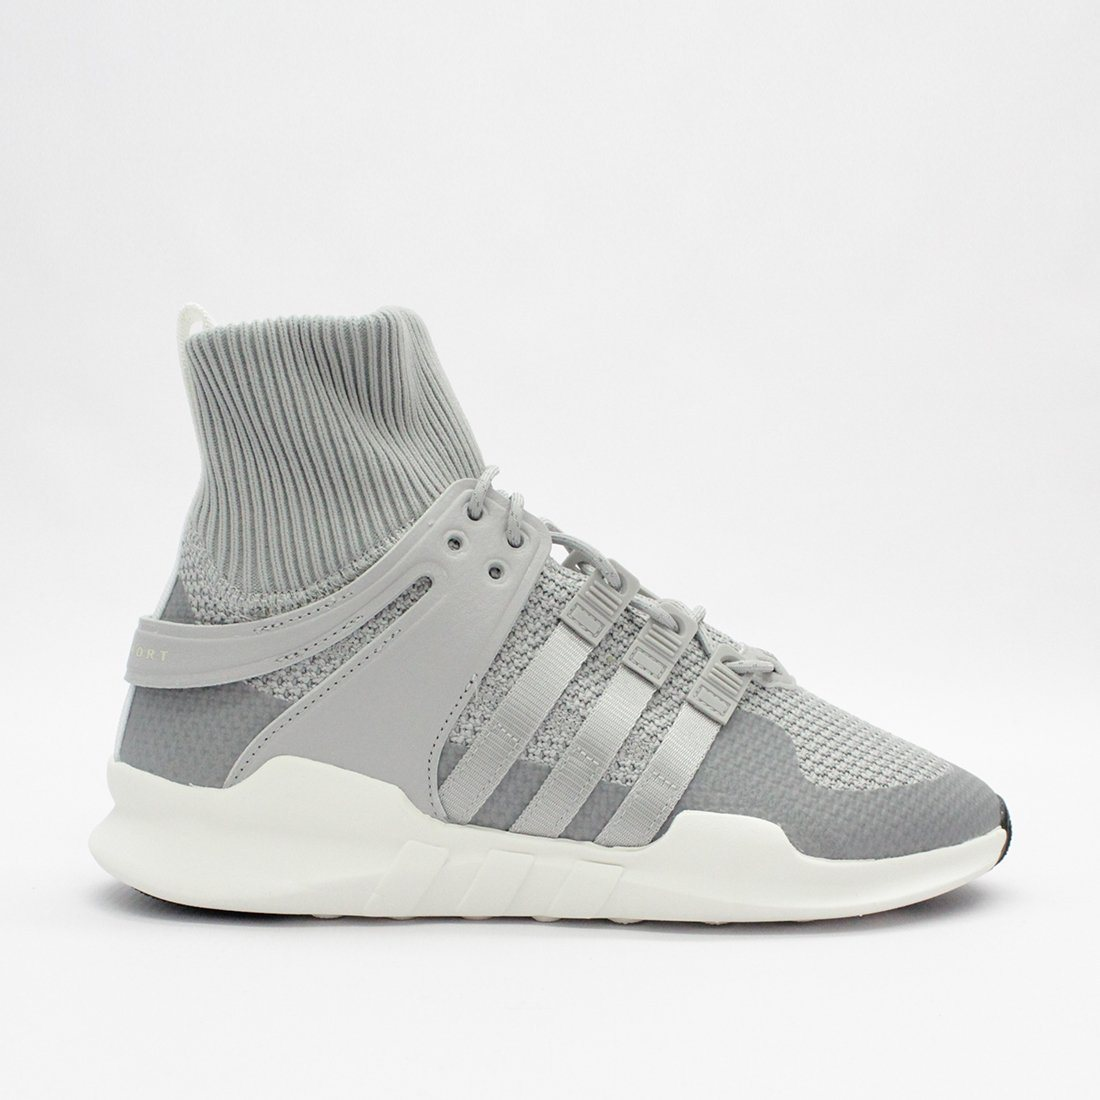 Adidas Originals EQT Support ADV Winter Grey BZ0641